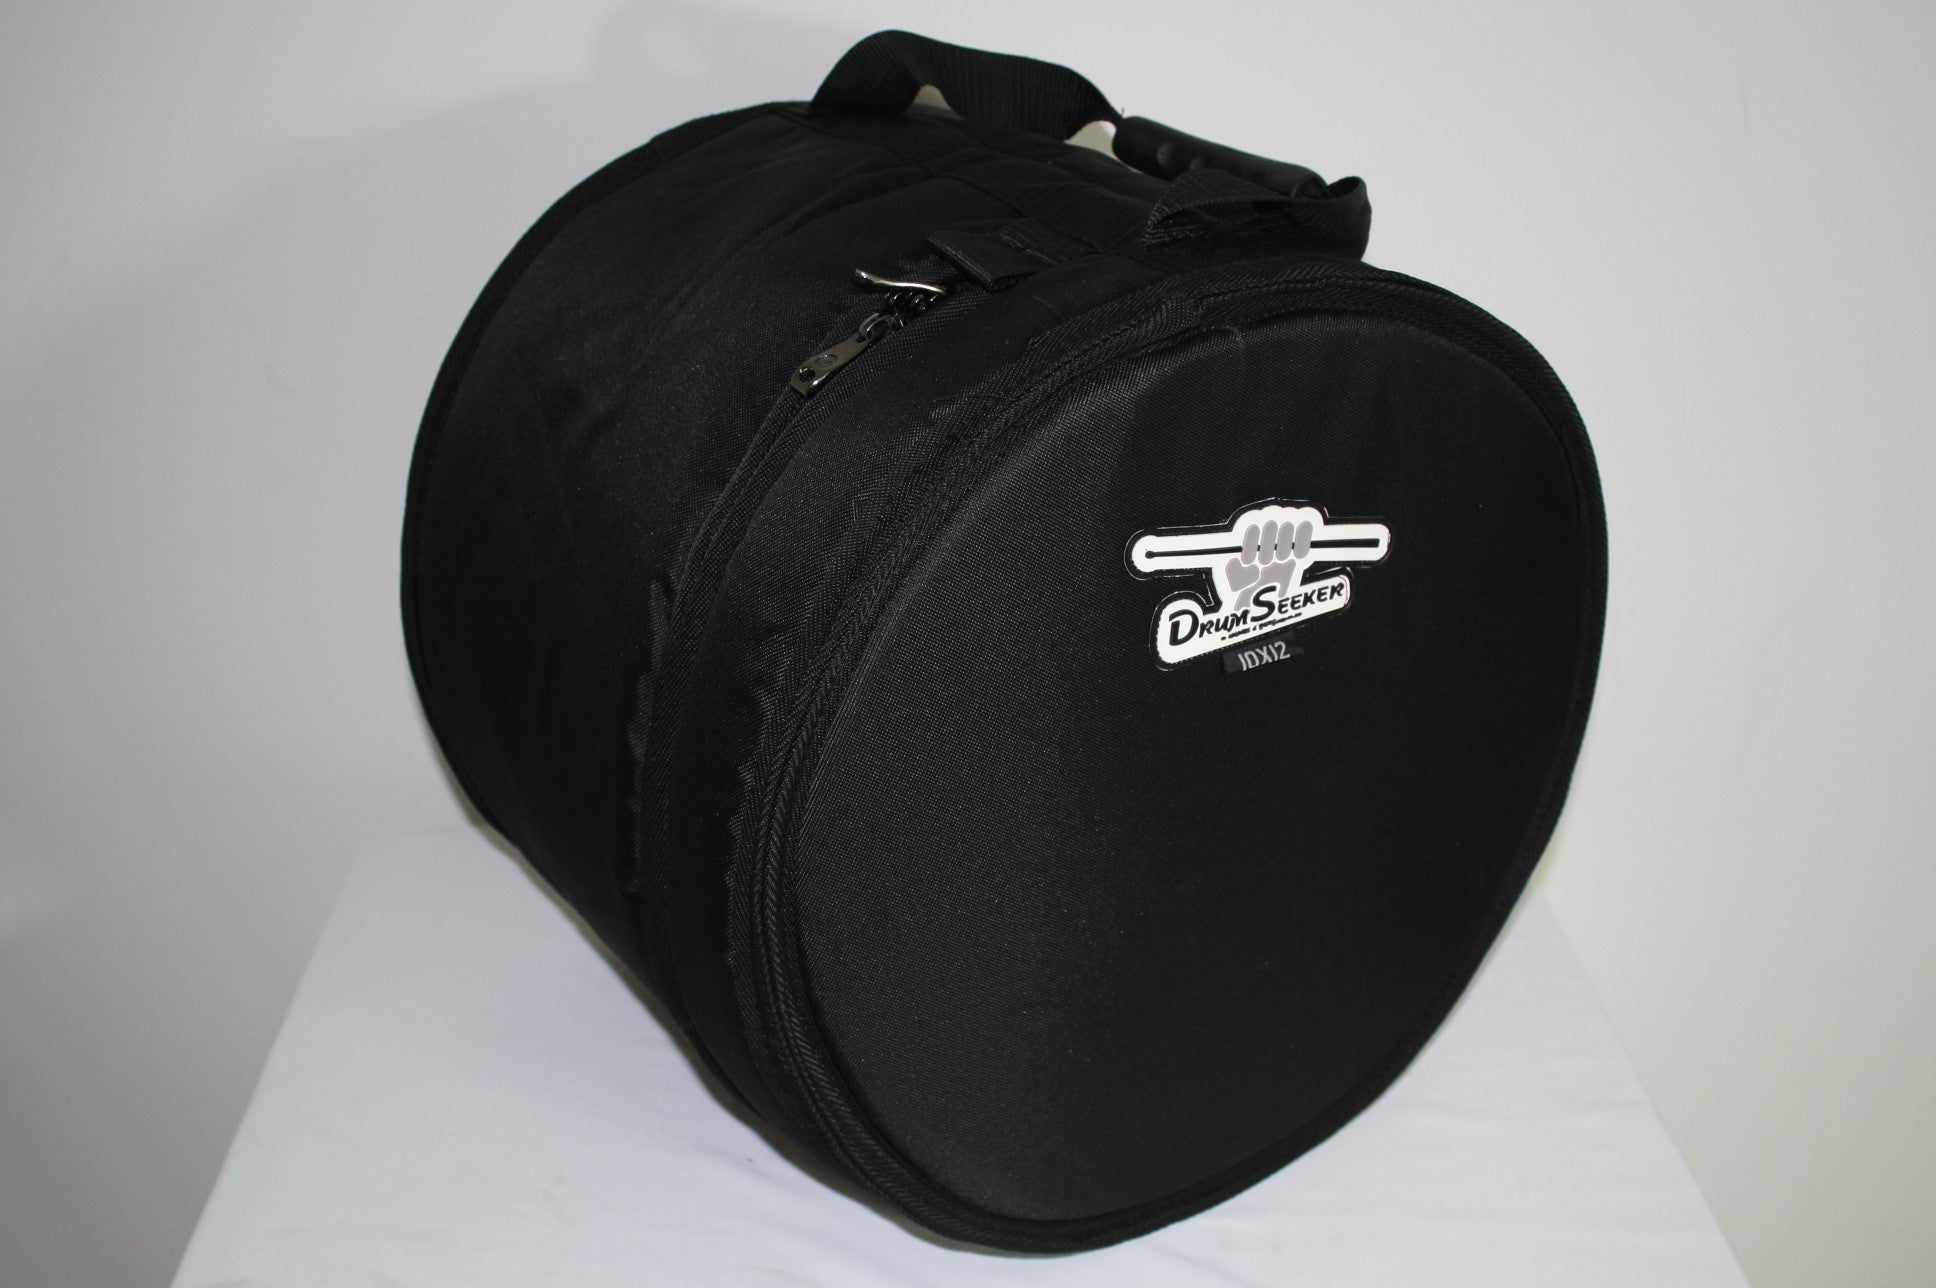 H&B  Drum Seeker 9 x 10 Inches Tom Drum Bag